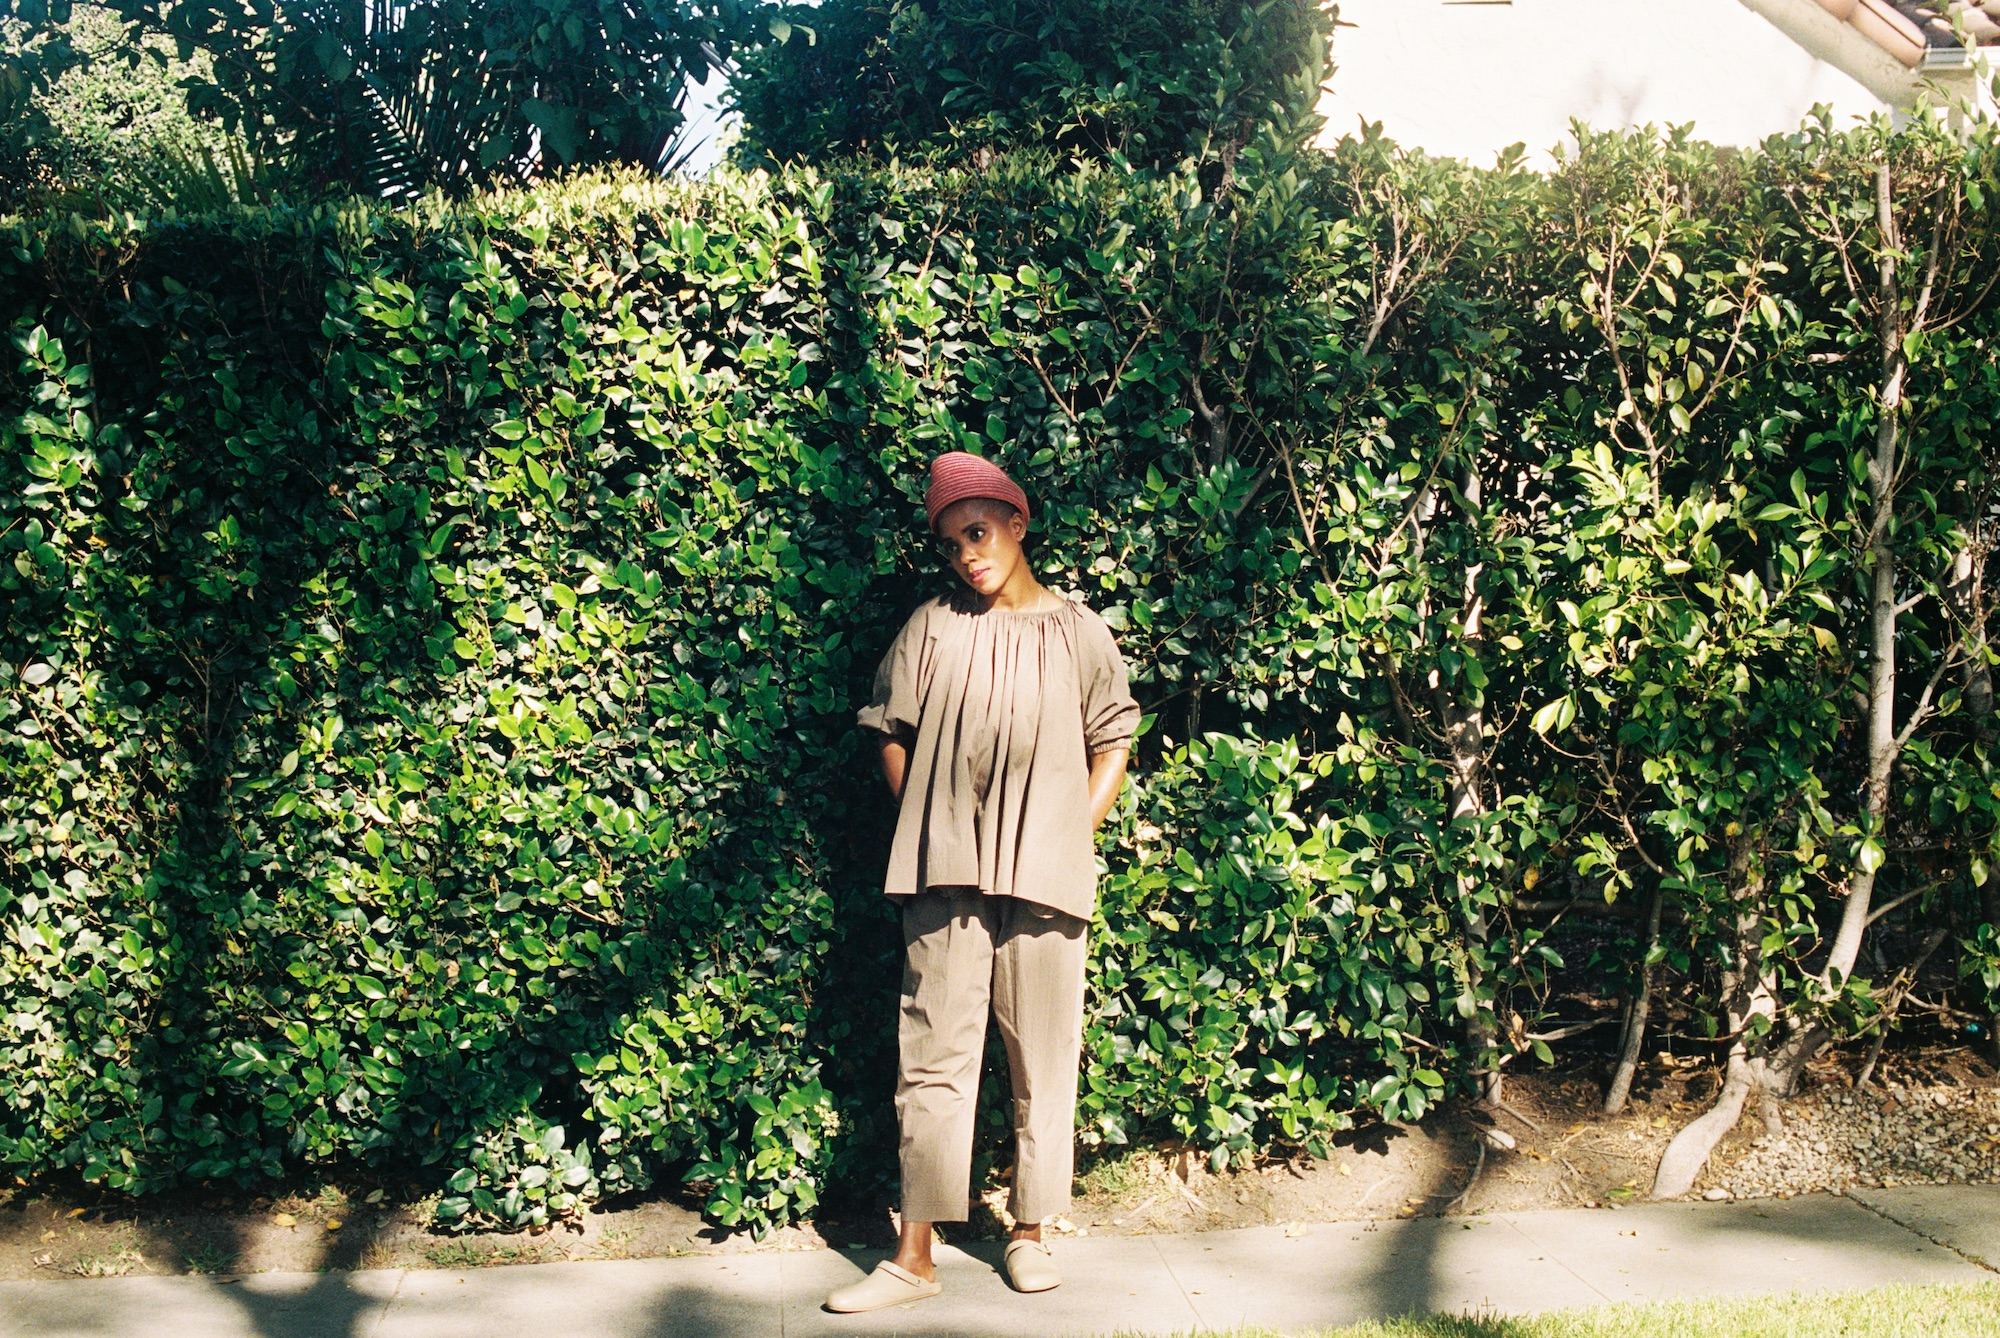 Woman standing in front of hedges janicza bravo